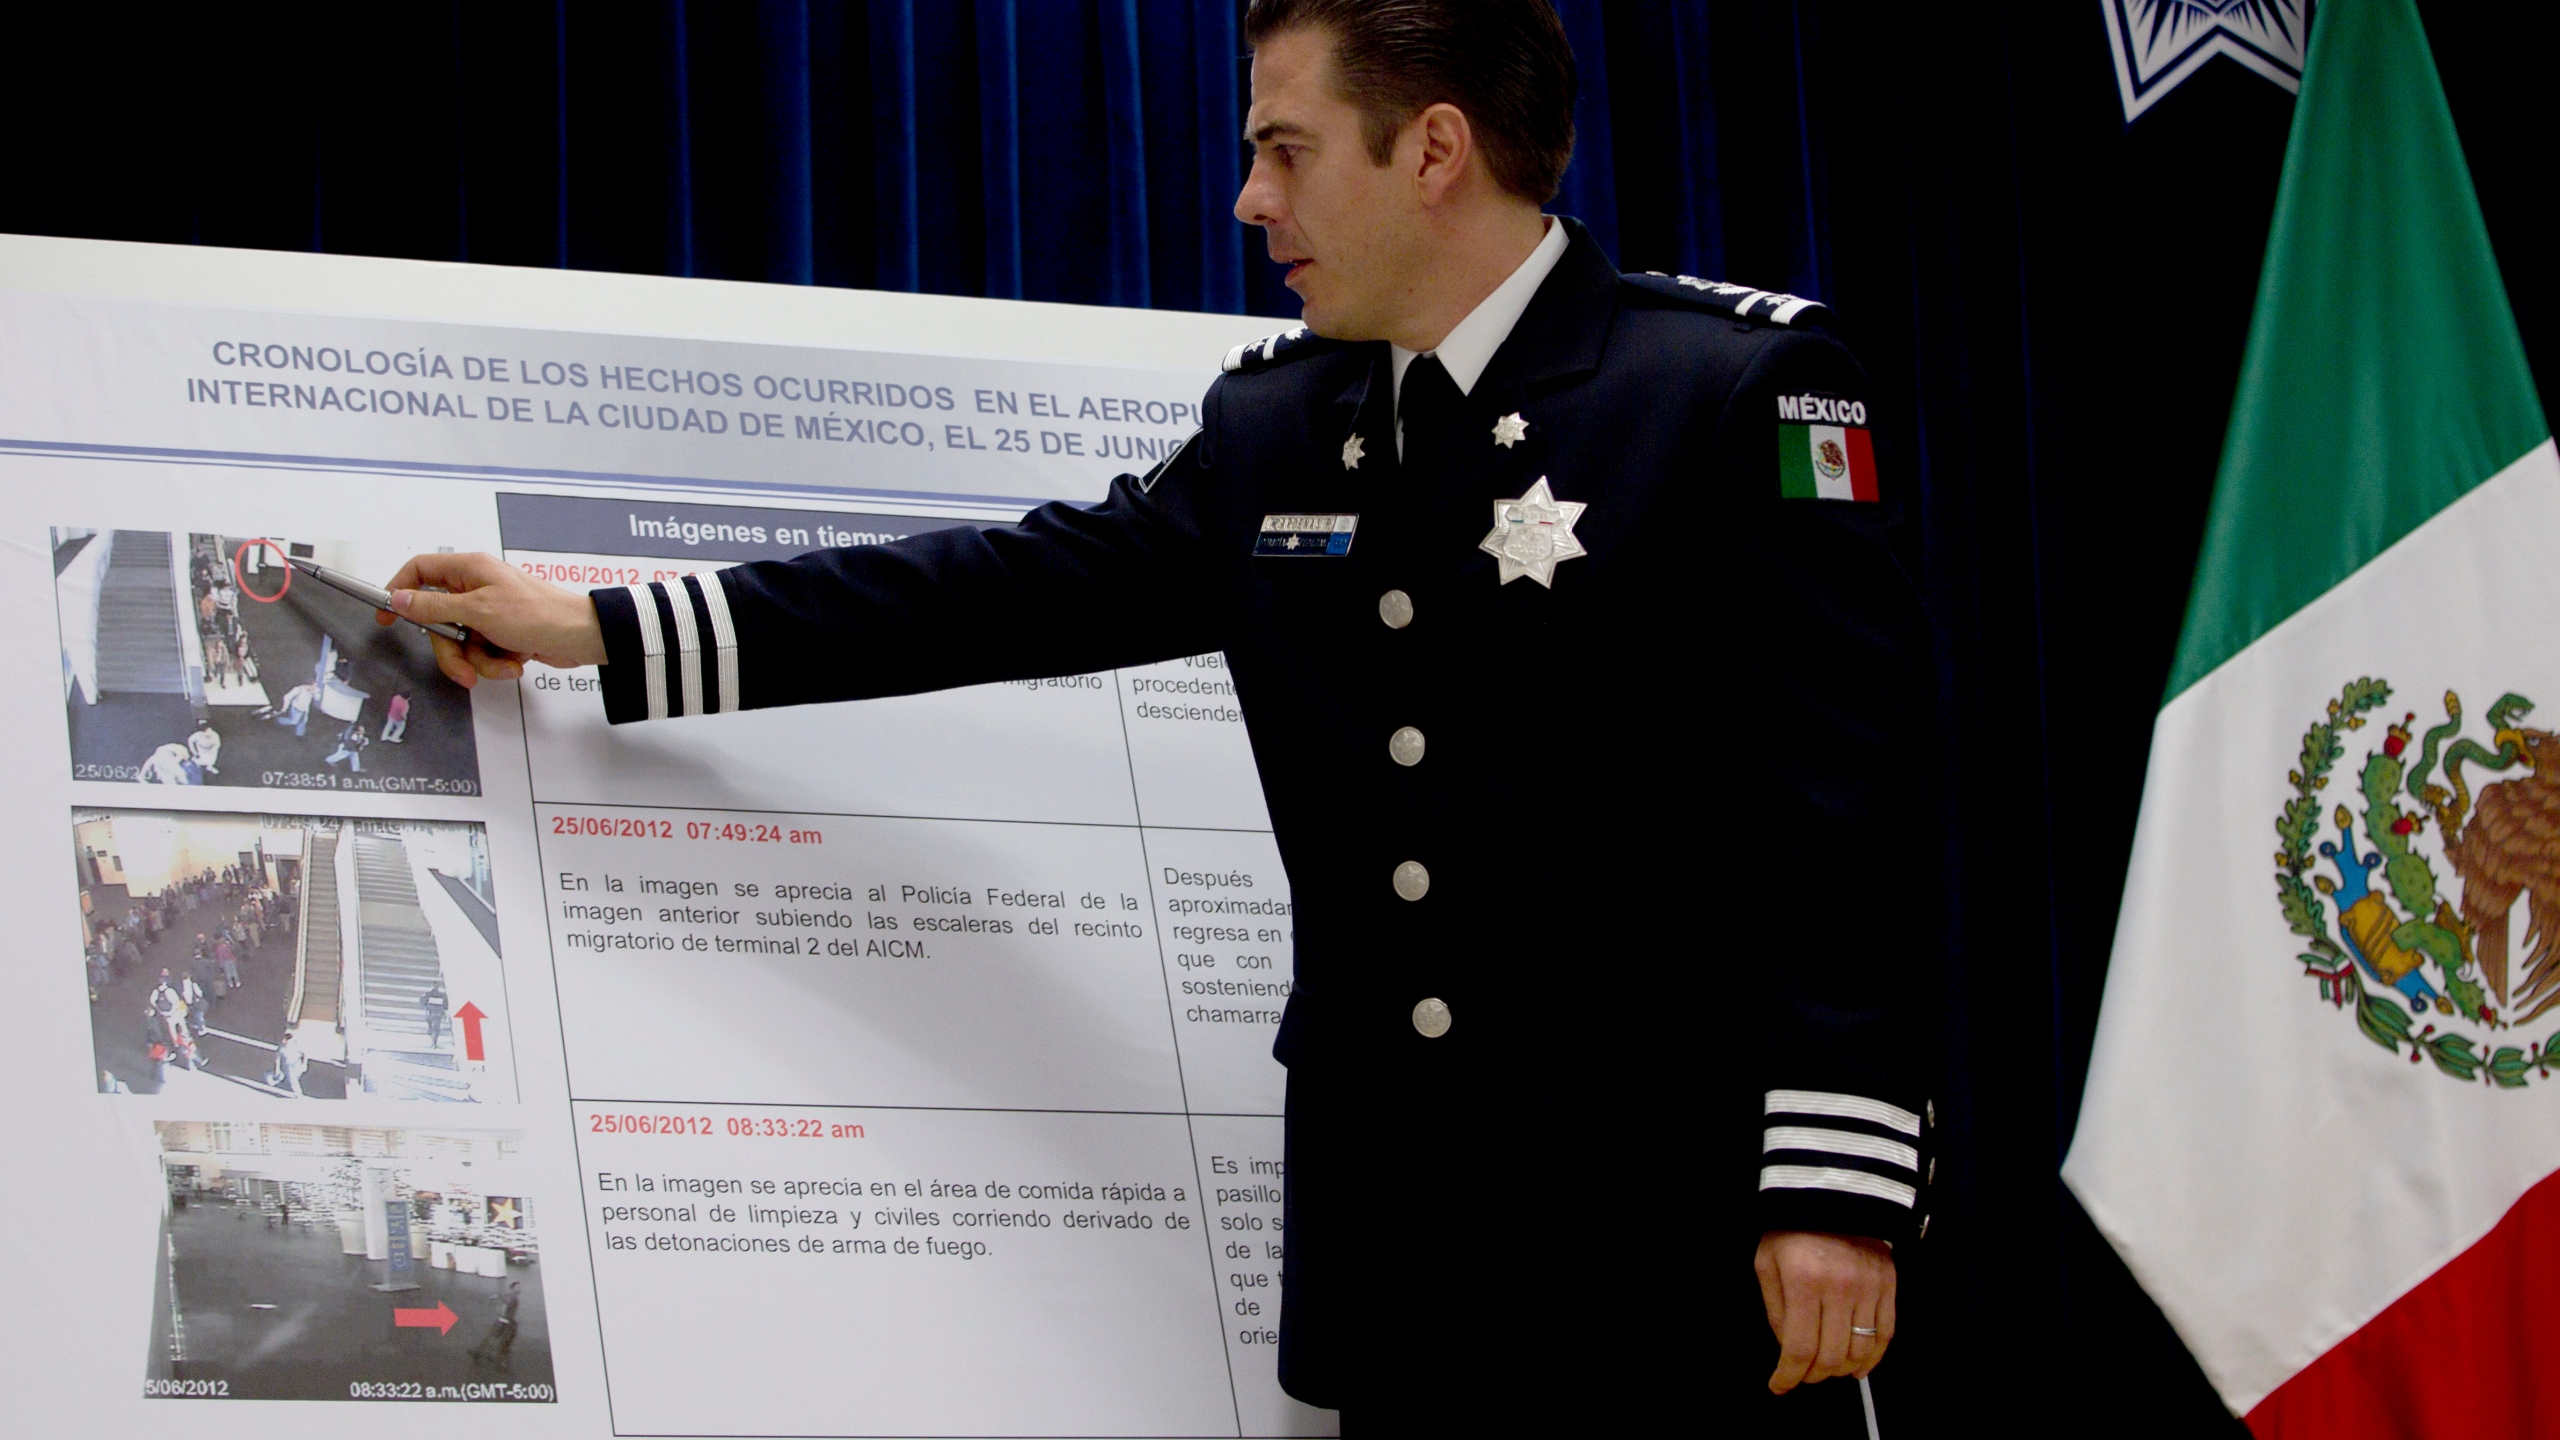 In this June 28, 2012 file photo, Luis Cardenas Palomino, chief of the regional security division of Mexico's federal police, points to surveillance camera footage at the international airport related to a shooting, during a press conference in Mexico City. Mexico said Monday, July 5, 2021, that it has arrested the former leading police officers on charges of torture from nearly a decade ago. (AP Photo/Esteban Felix, File)